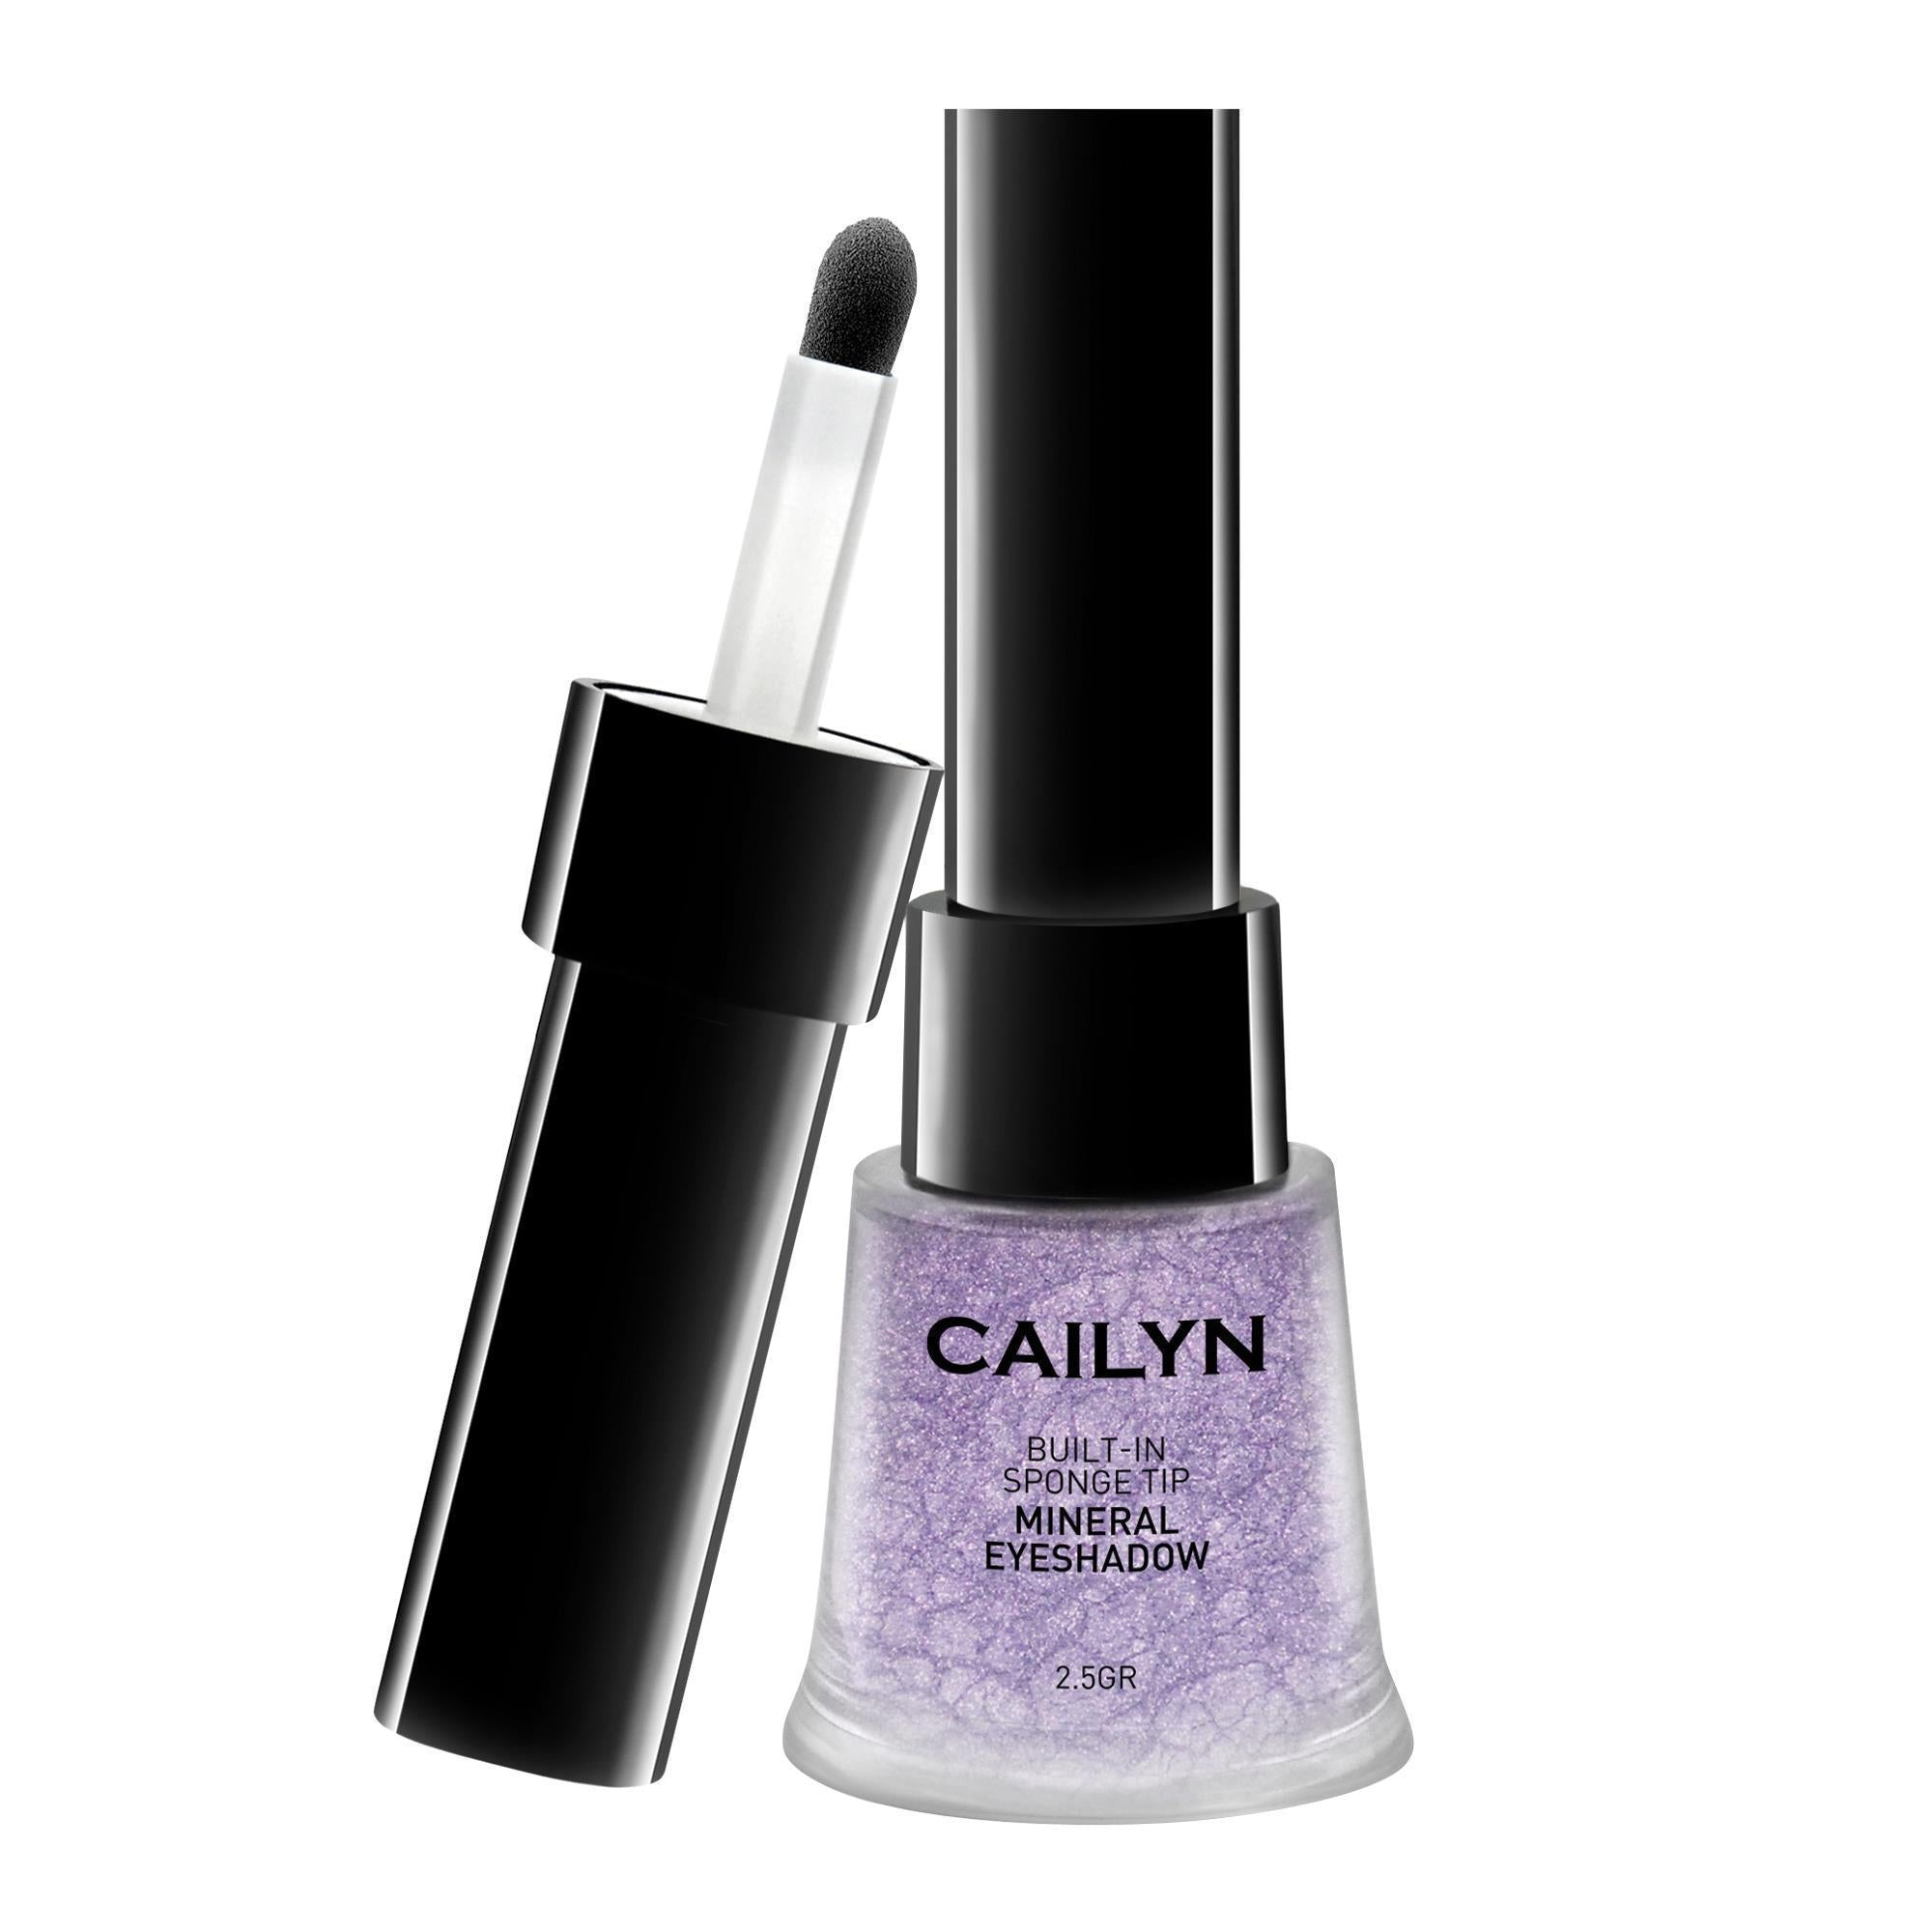 Makeup, Skin & Personal Care Star Purple Cailyn Mineral Eye Polish / Built-In Sponge Tip